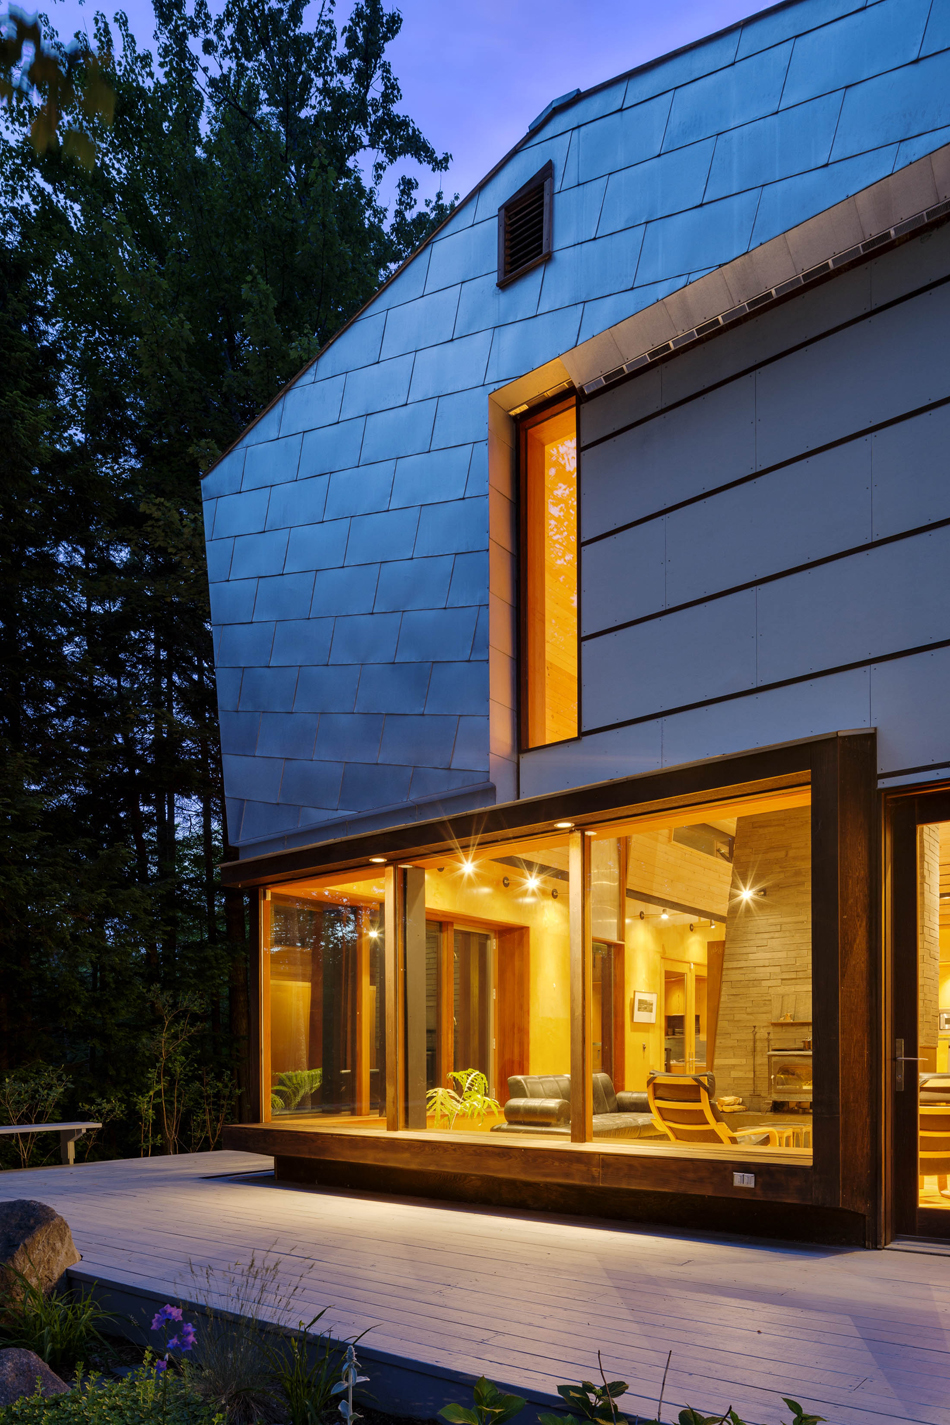 Interstice_Architects-Mountain-House_Exterior-11